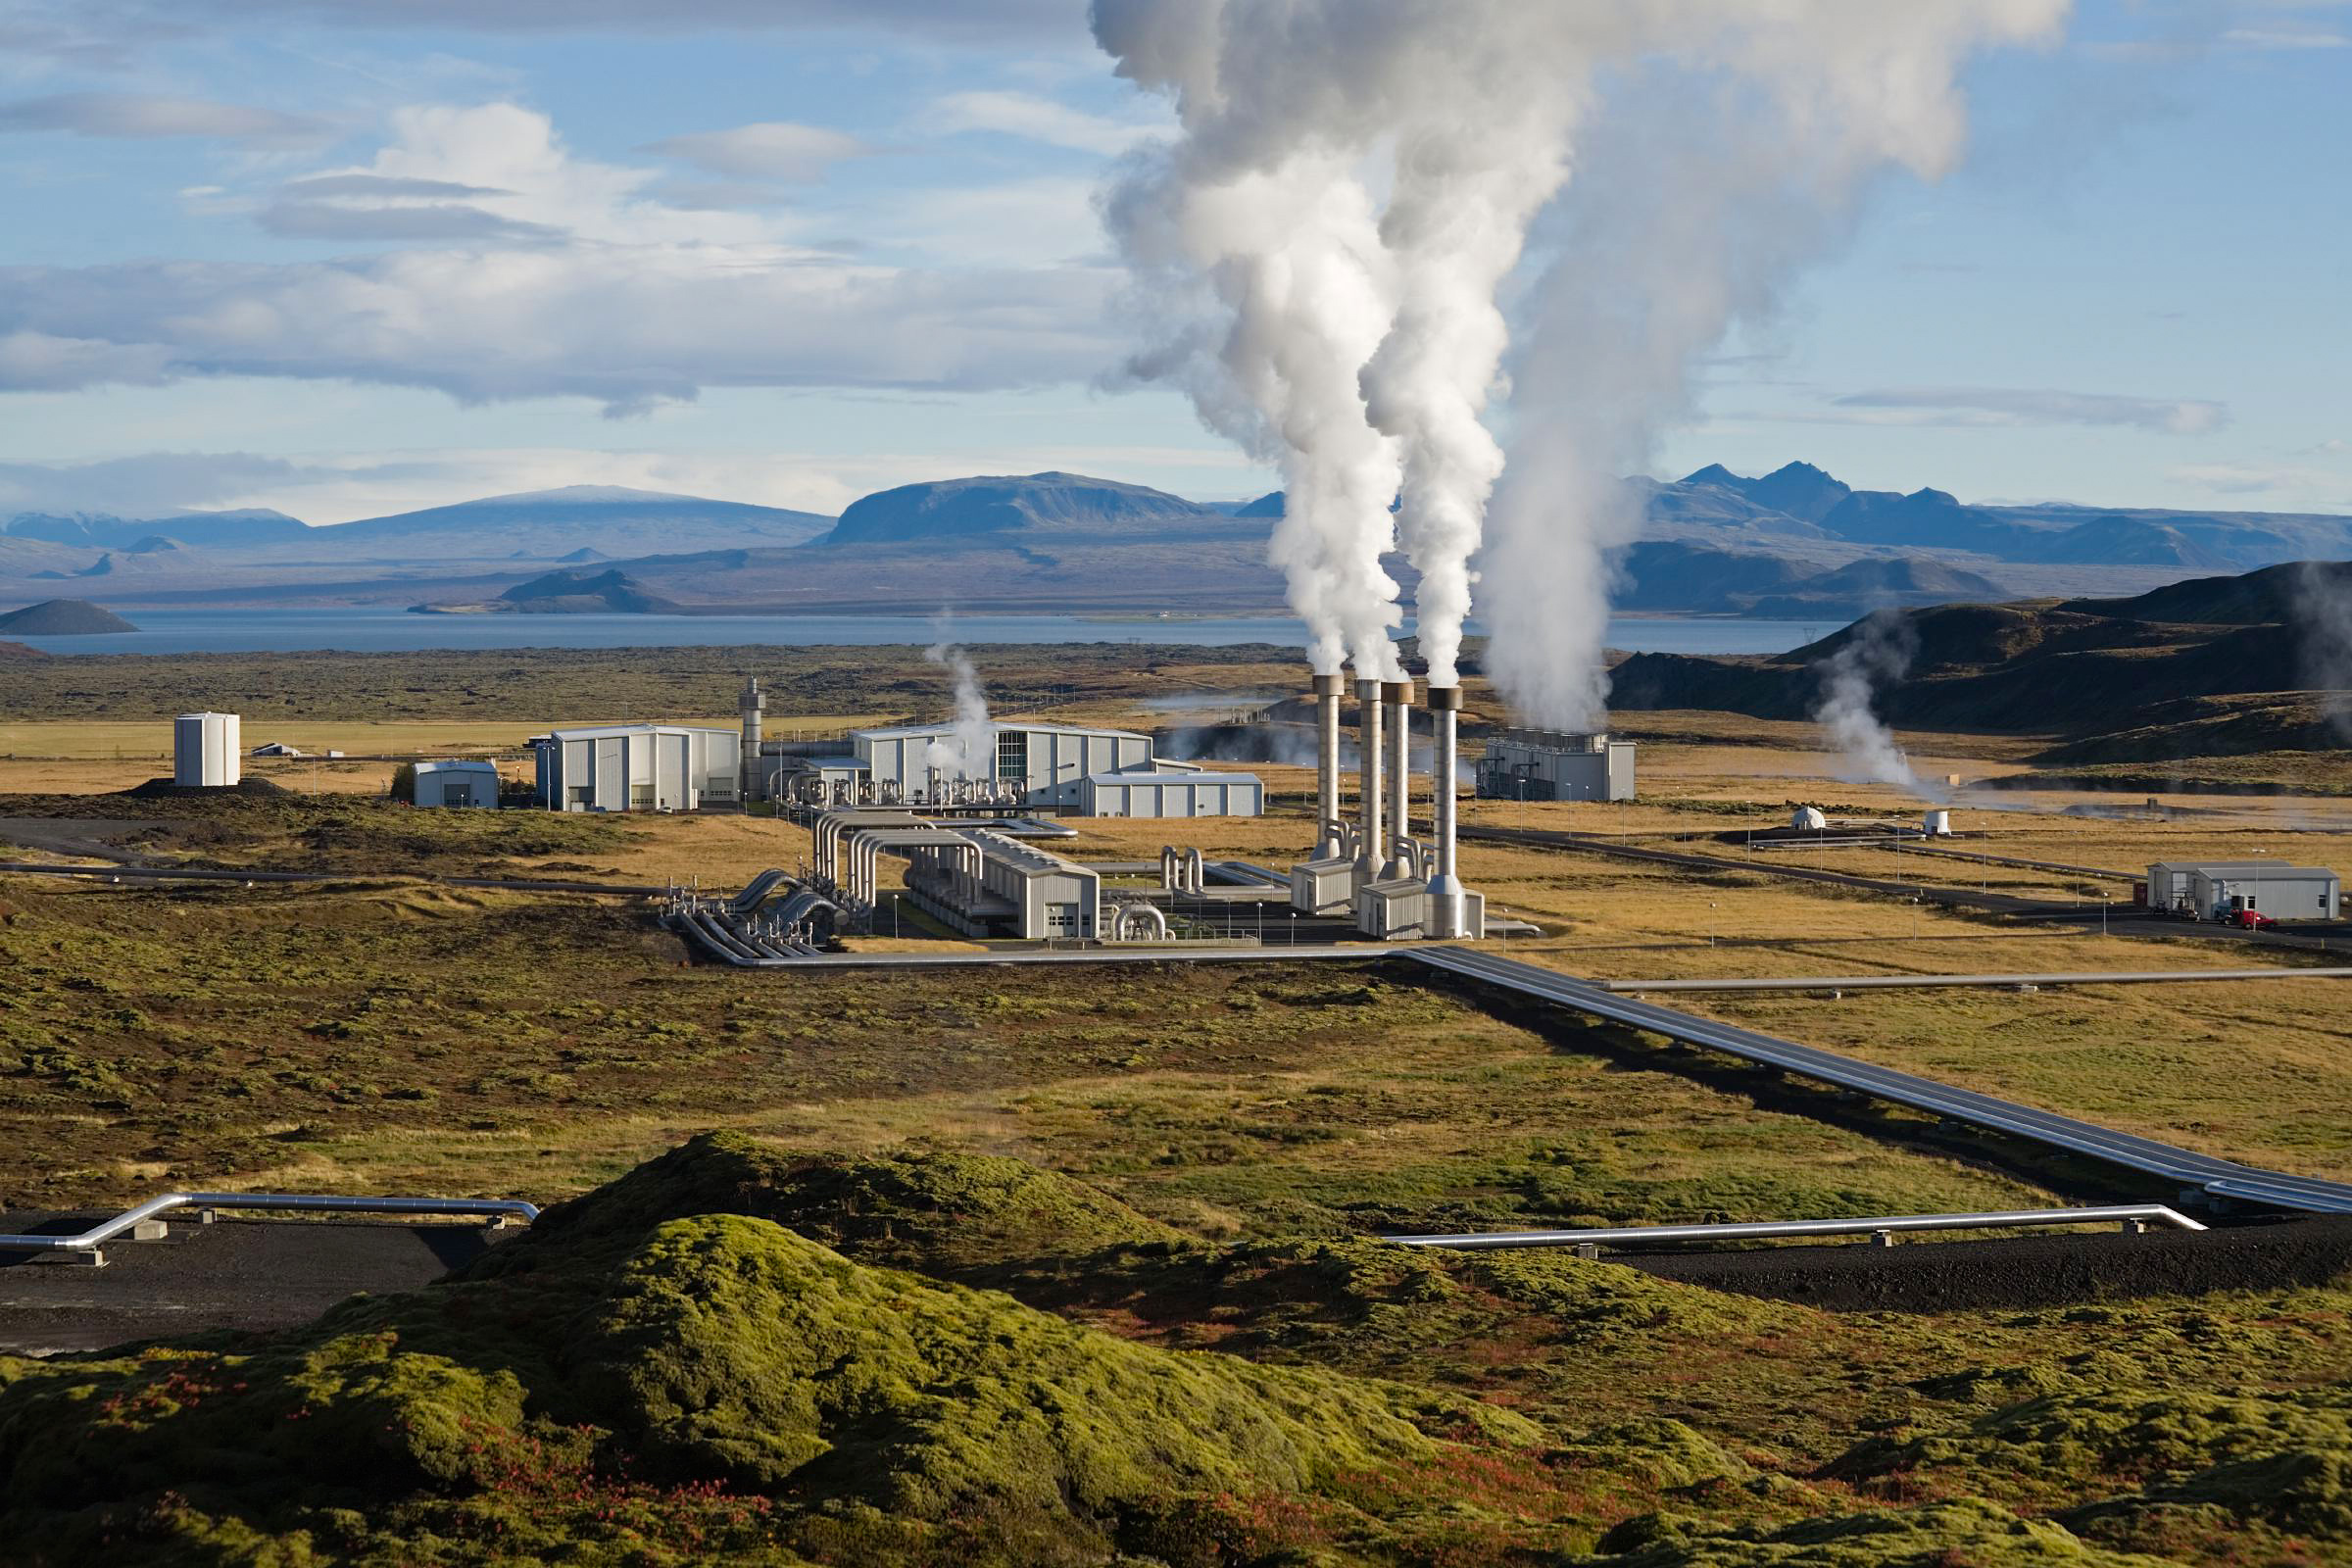 The Nesjavellir Geothermal Power Plant in Þingvellir, Iceland